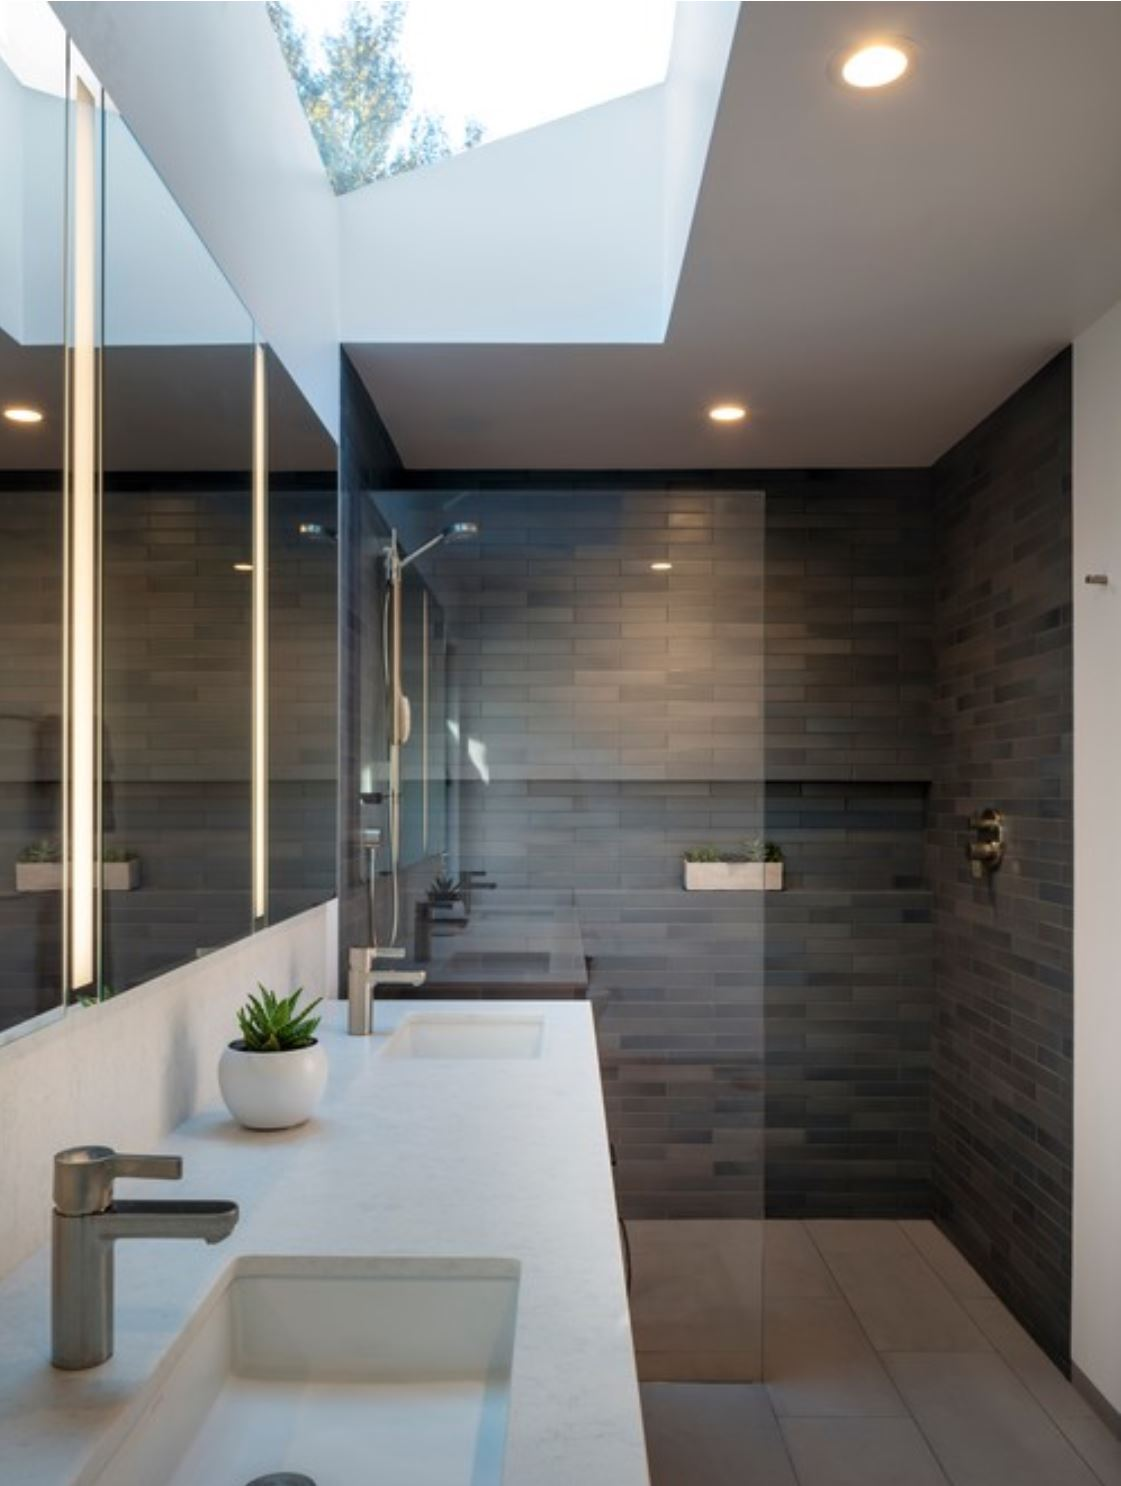 From Realtor Magazine 12 30 2019 second of the Top 10 Bathrooms of 2019 Hoey Team eXp Realty